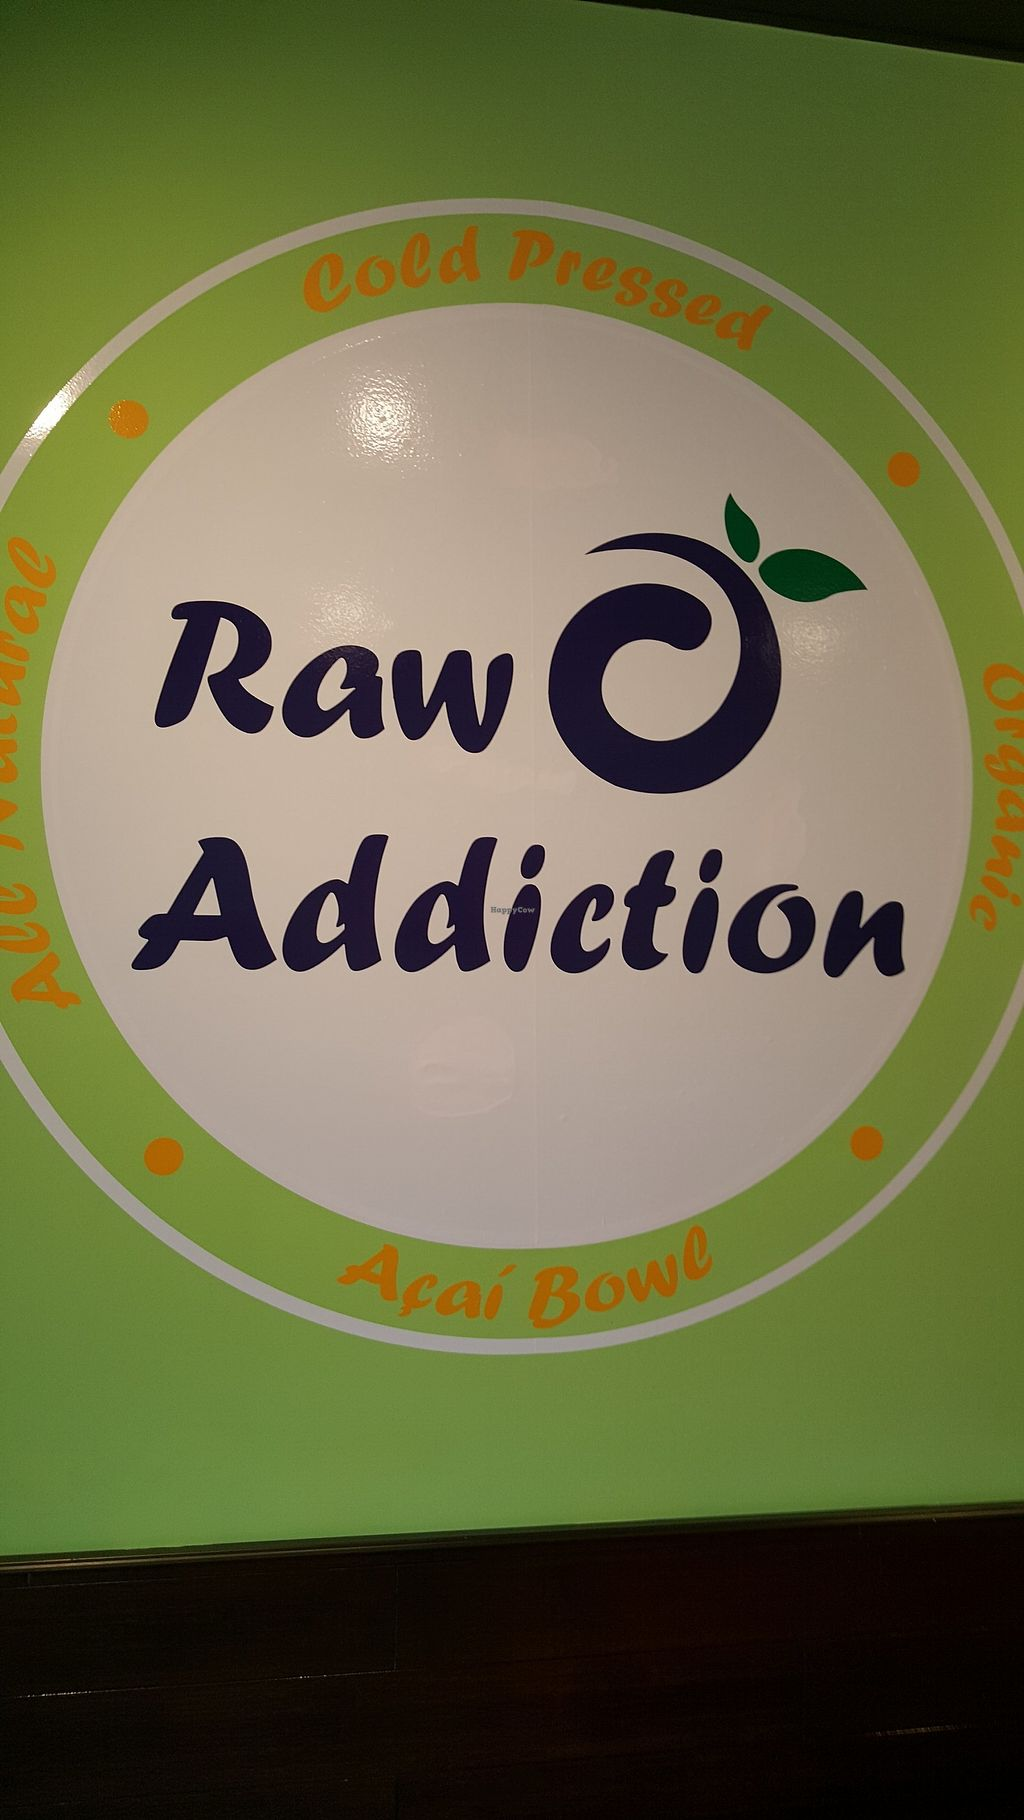 "Photo of Raw Addiction  by <a href=""/members/profile/rawaddiction"">rawaddiction</a> <br/>Raw Addiction <br/> July 5, 2017  - <a href='/contact/abuse/image/95487/276932'>Report</a>"